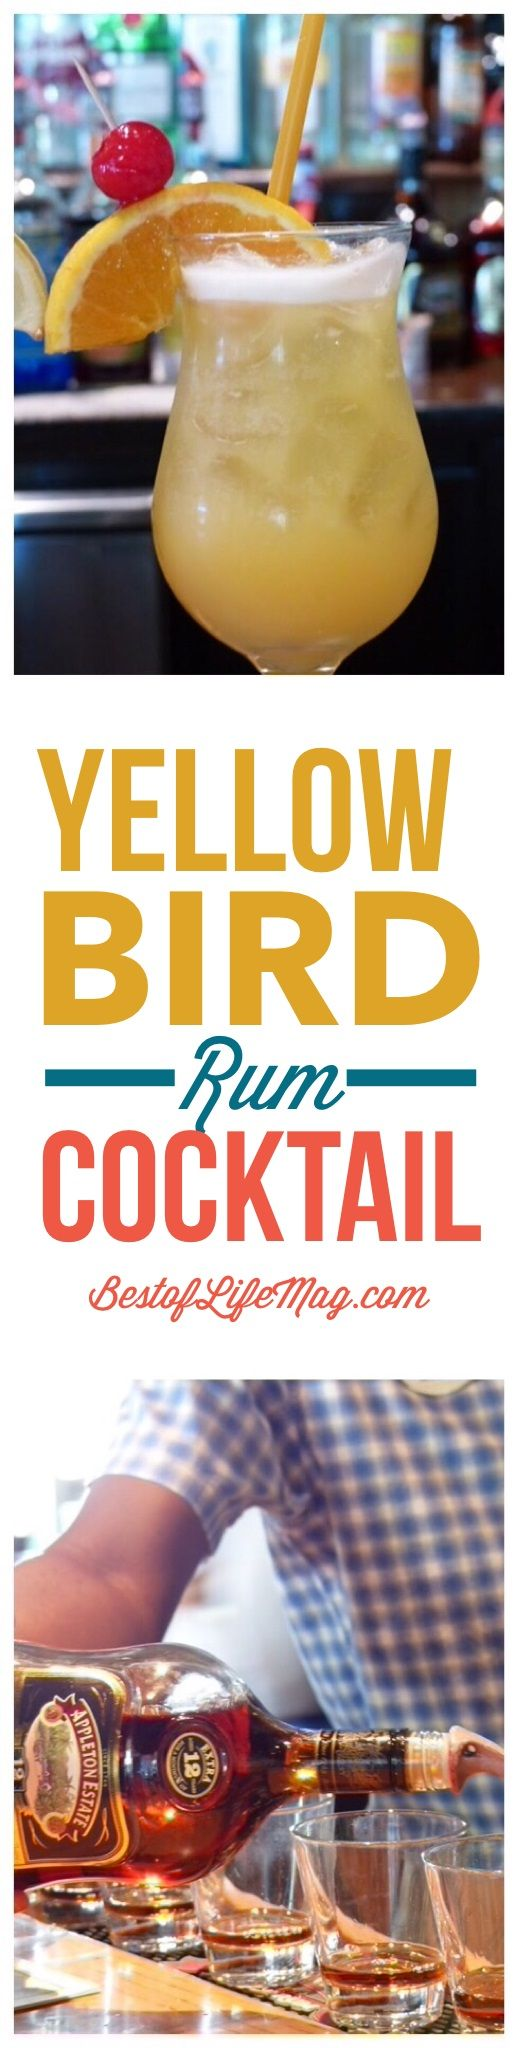 Yellow bird cocktail recipe glasses beaches and birds for Cocktail yellow bird